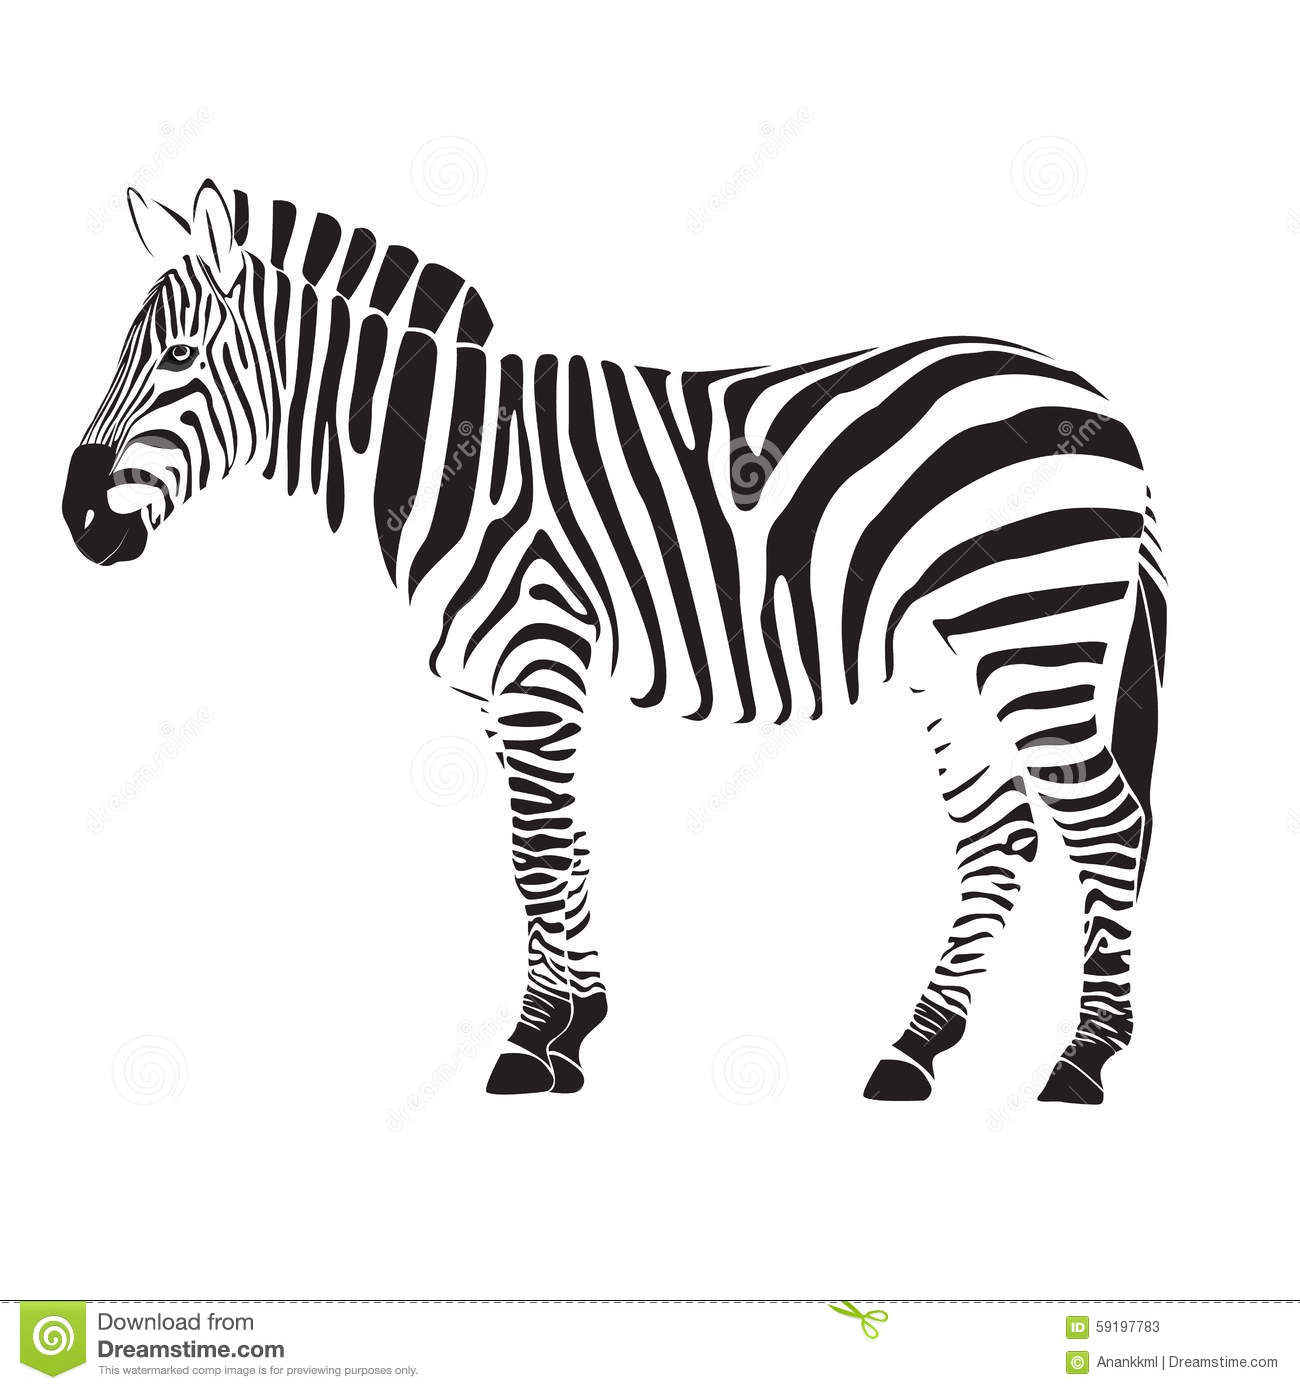 Zebra Illustration Stock Illustration